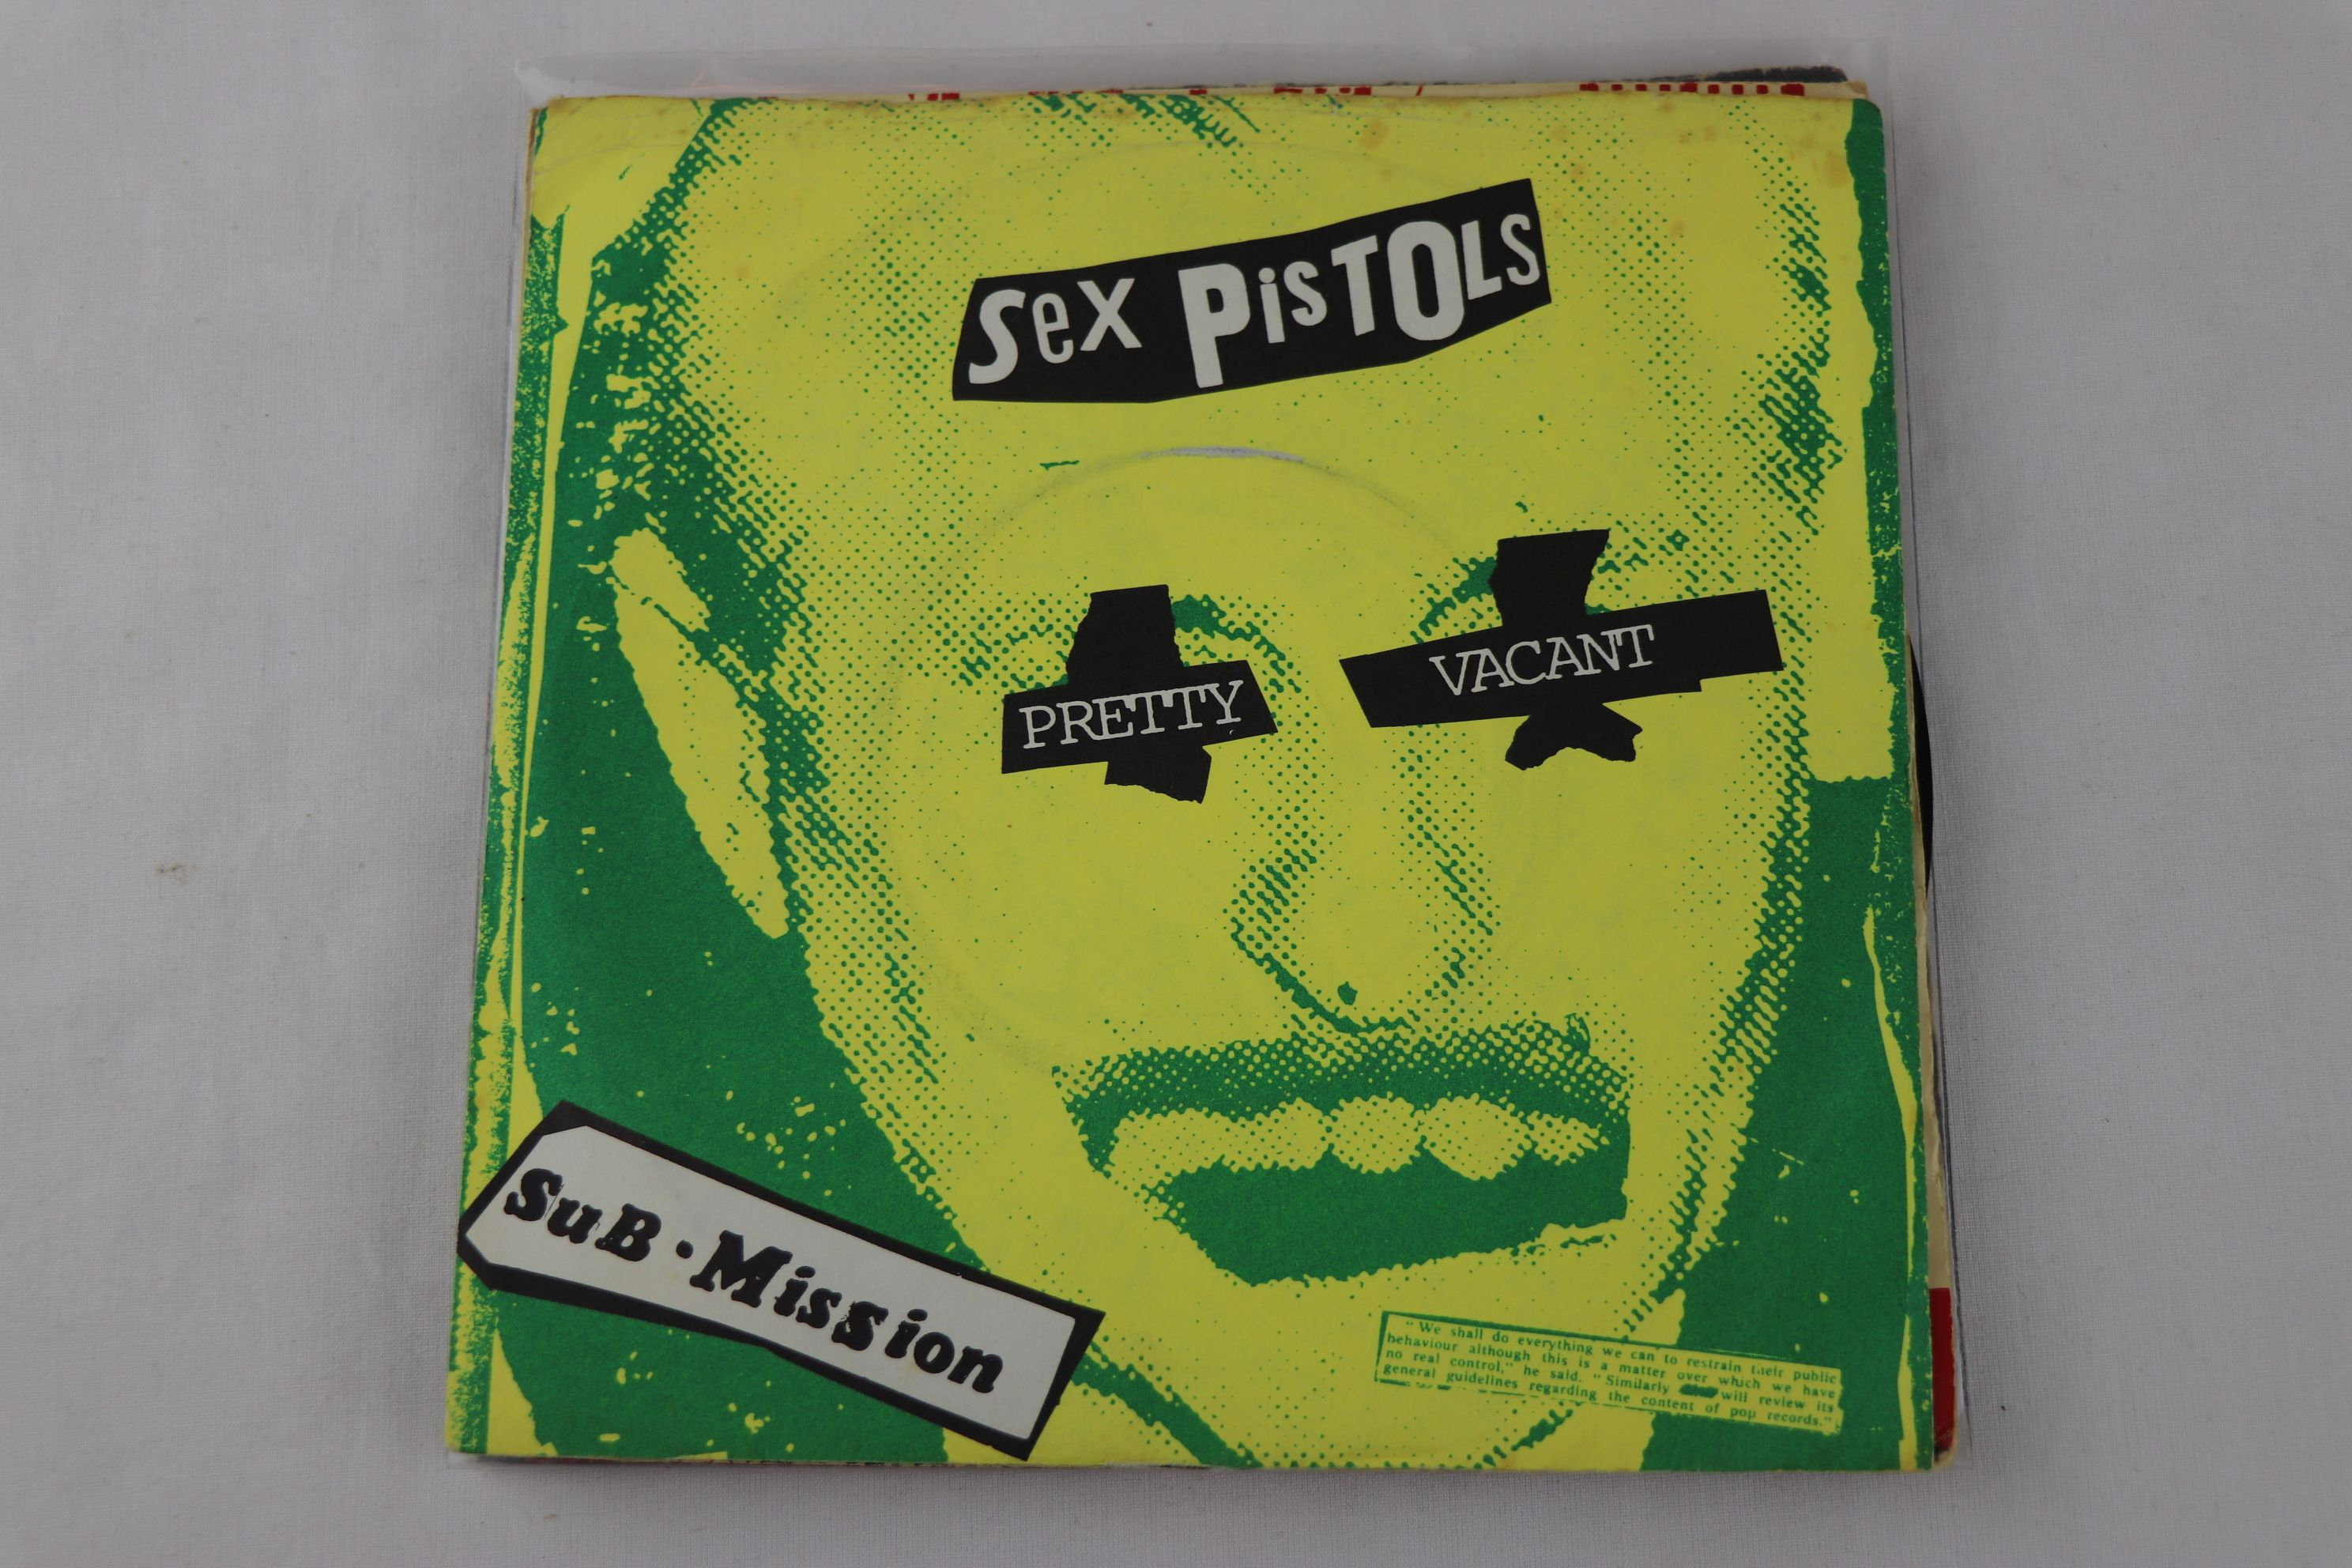 PUNK - SEX PISTOLS - PACK OF 7 ORIGINAL PRESSING SINGLES. 1. GOD SAVE THE QUEEN, 1977 VIRGIN RECORDS - Image 4 of 8